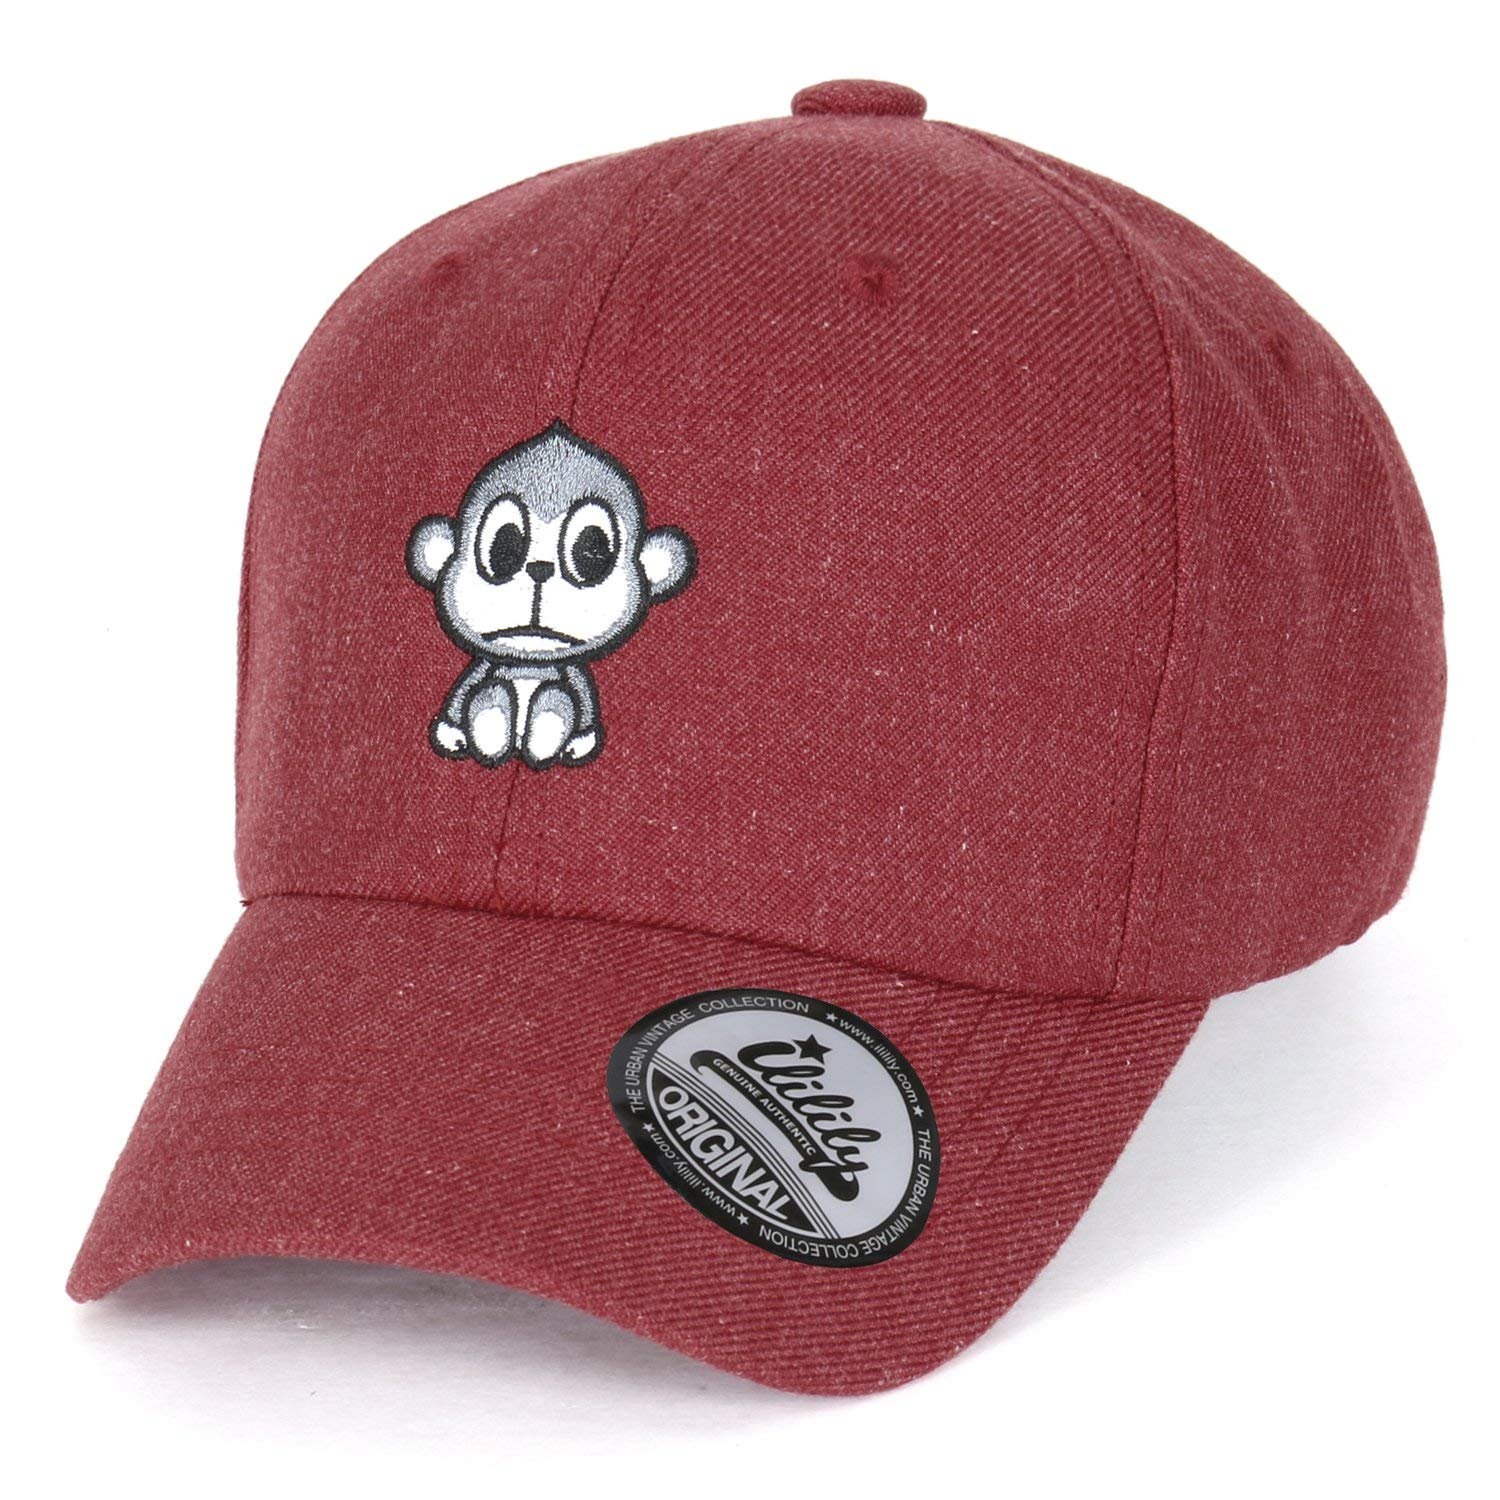 1577c3a7 ililily Cute Monkey Embroidery Adjustable Toddler Baby Kids Hat Baseball Cap